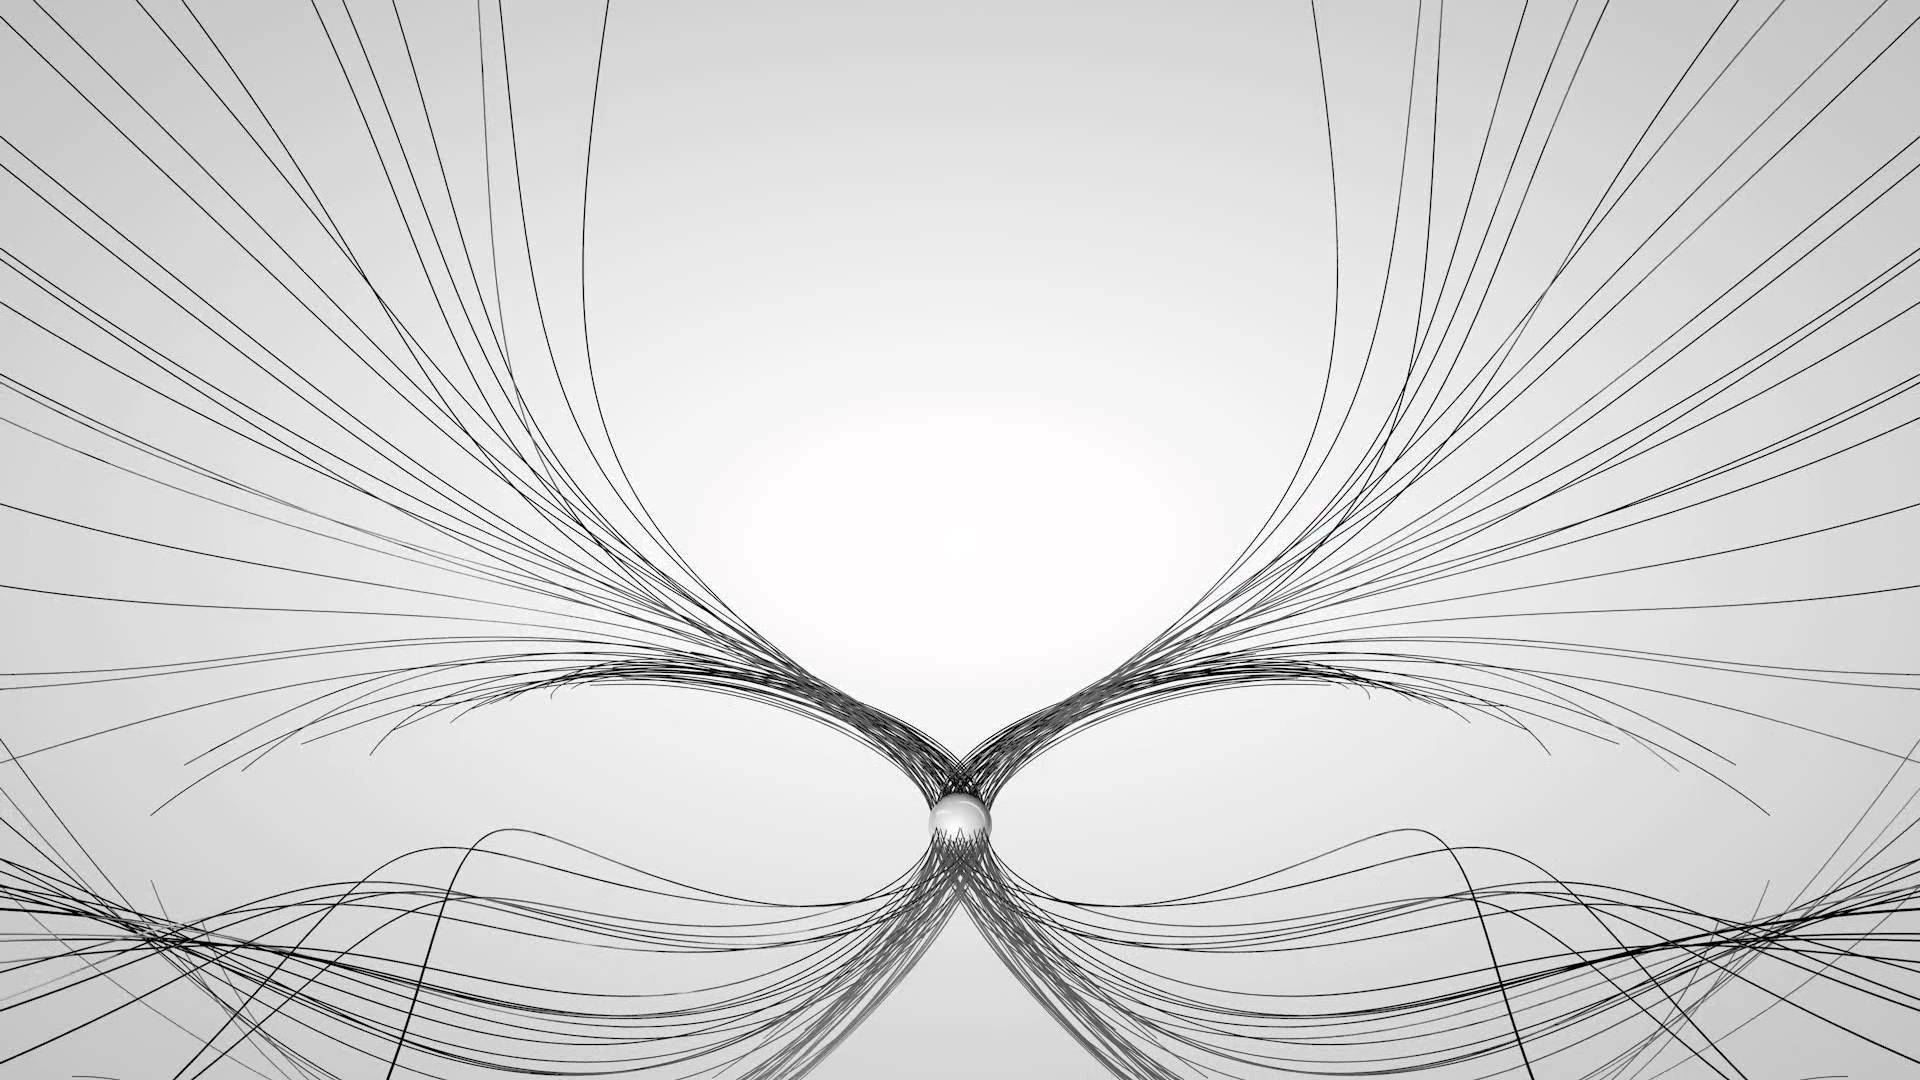 Abstract Lines For Desktop